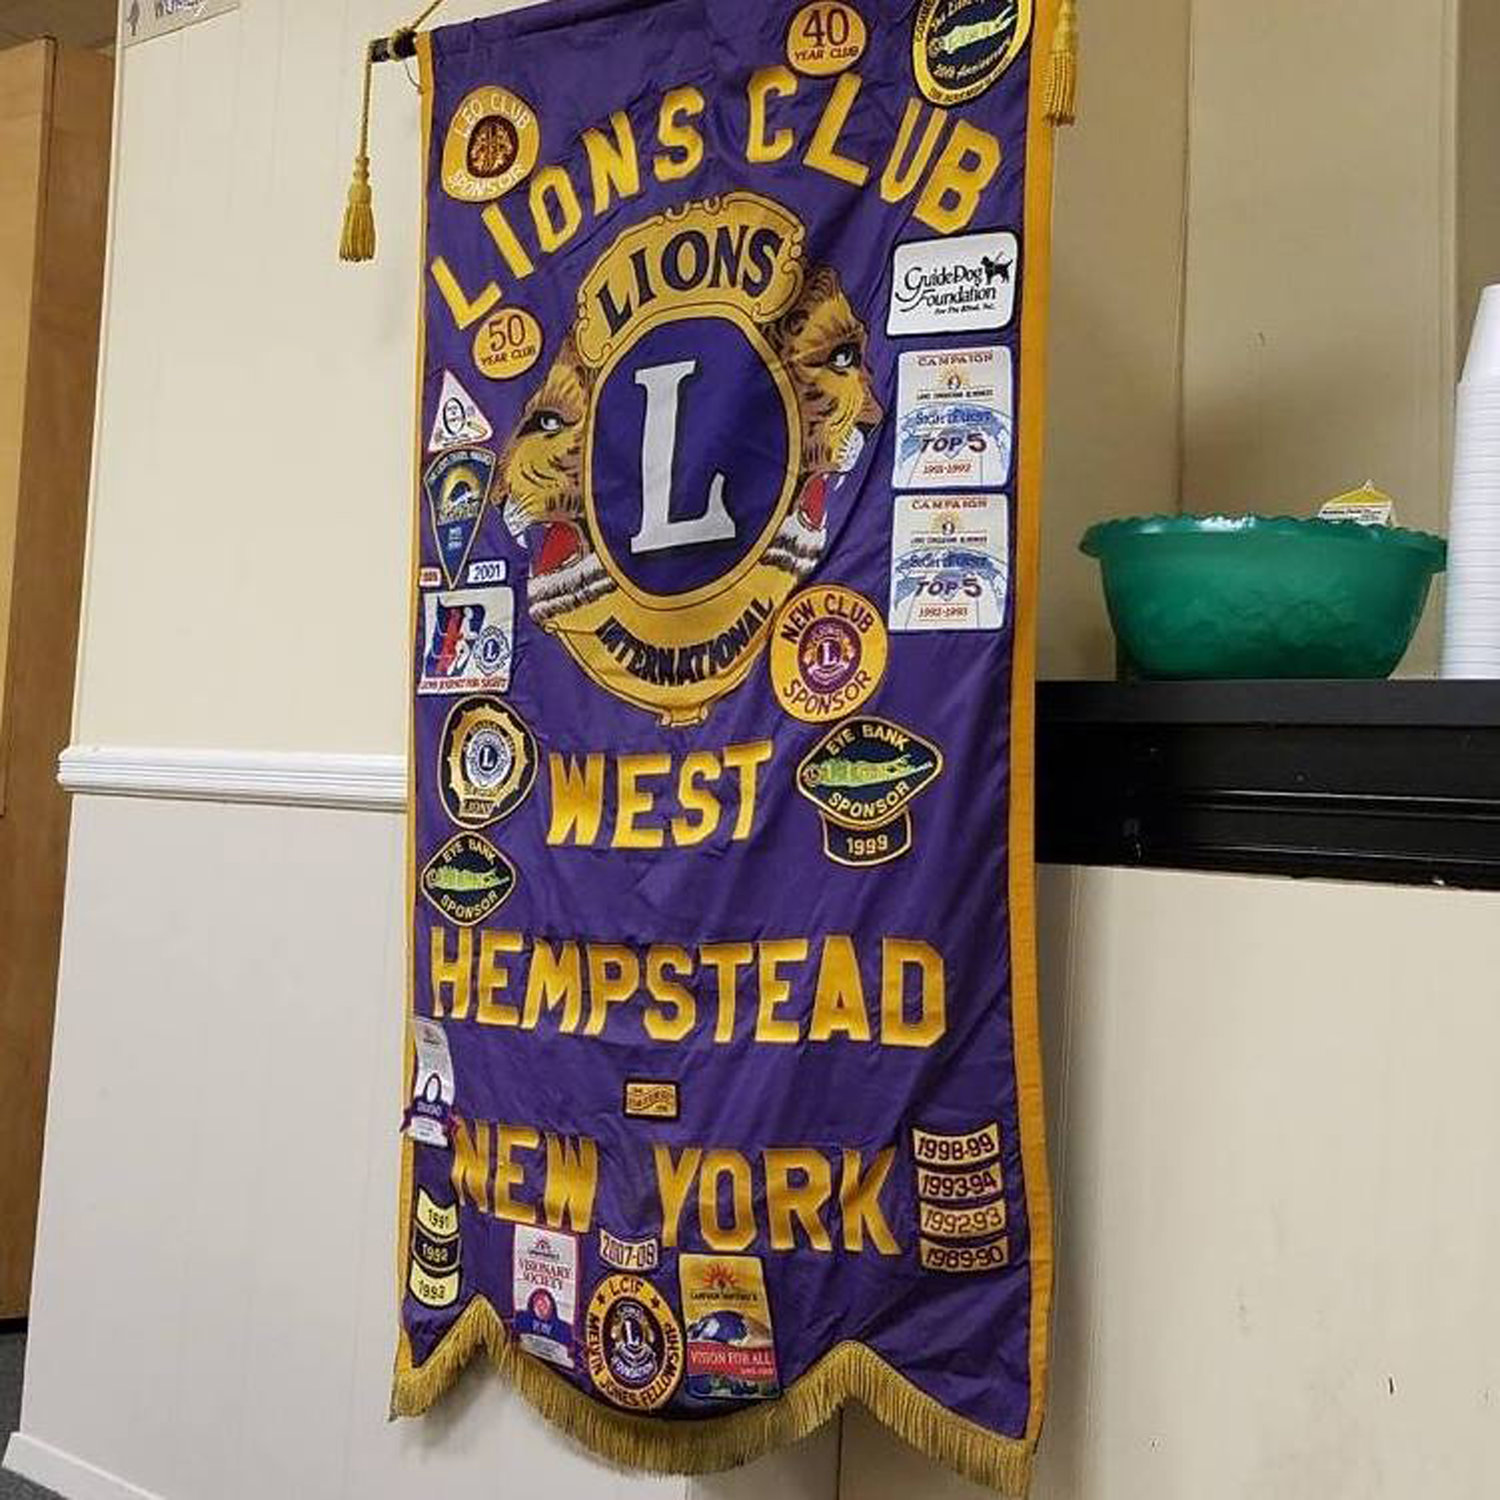 The Lions Club takes part in several events in the community throughout the year.